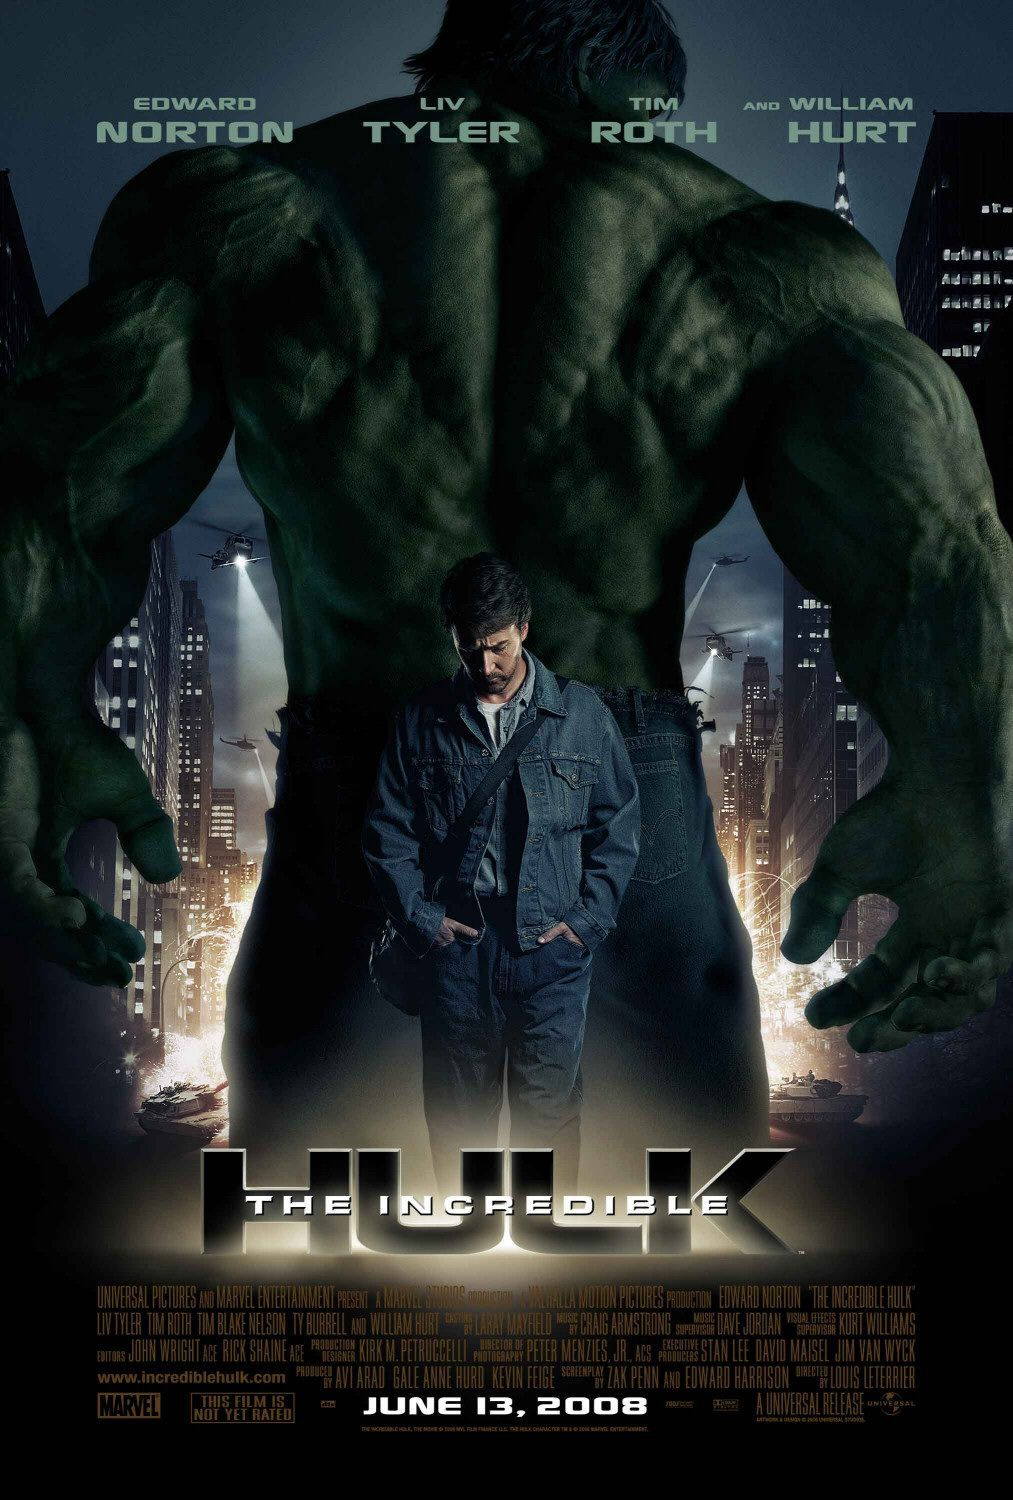 Hulk - Incredible Hulk - poster  - Edward Norton - Liv Tyler - Tim Roth - William Hurt